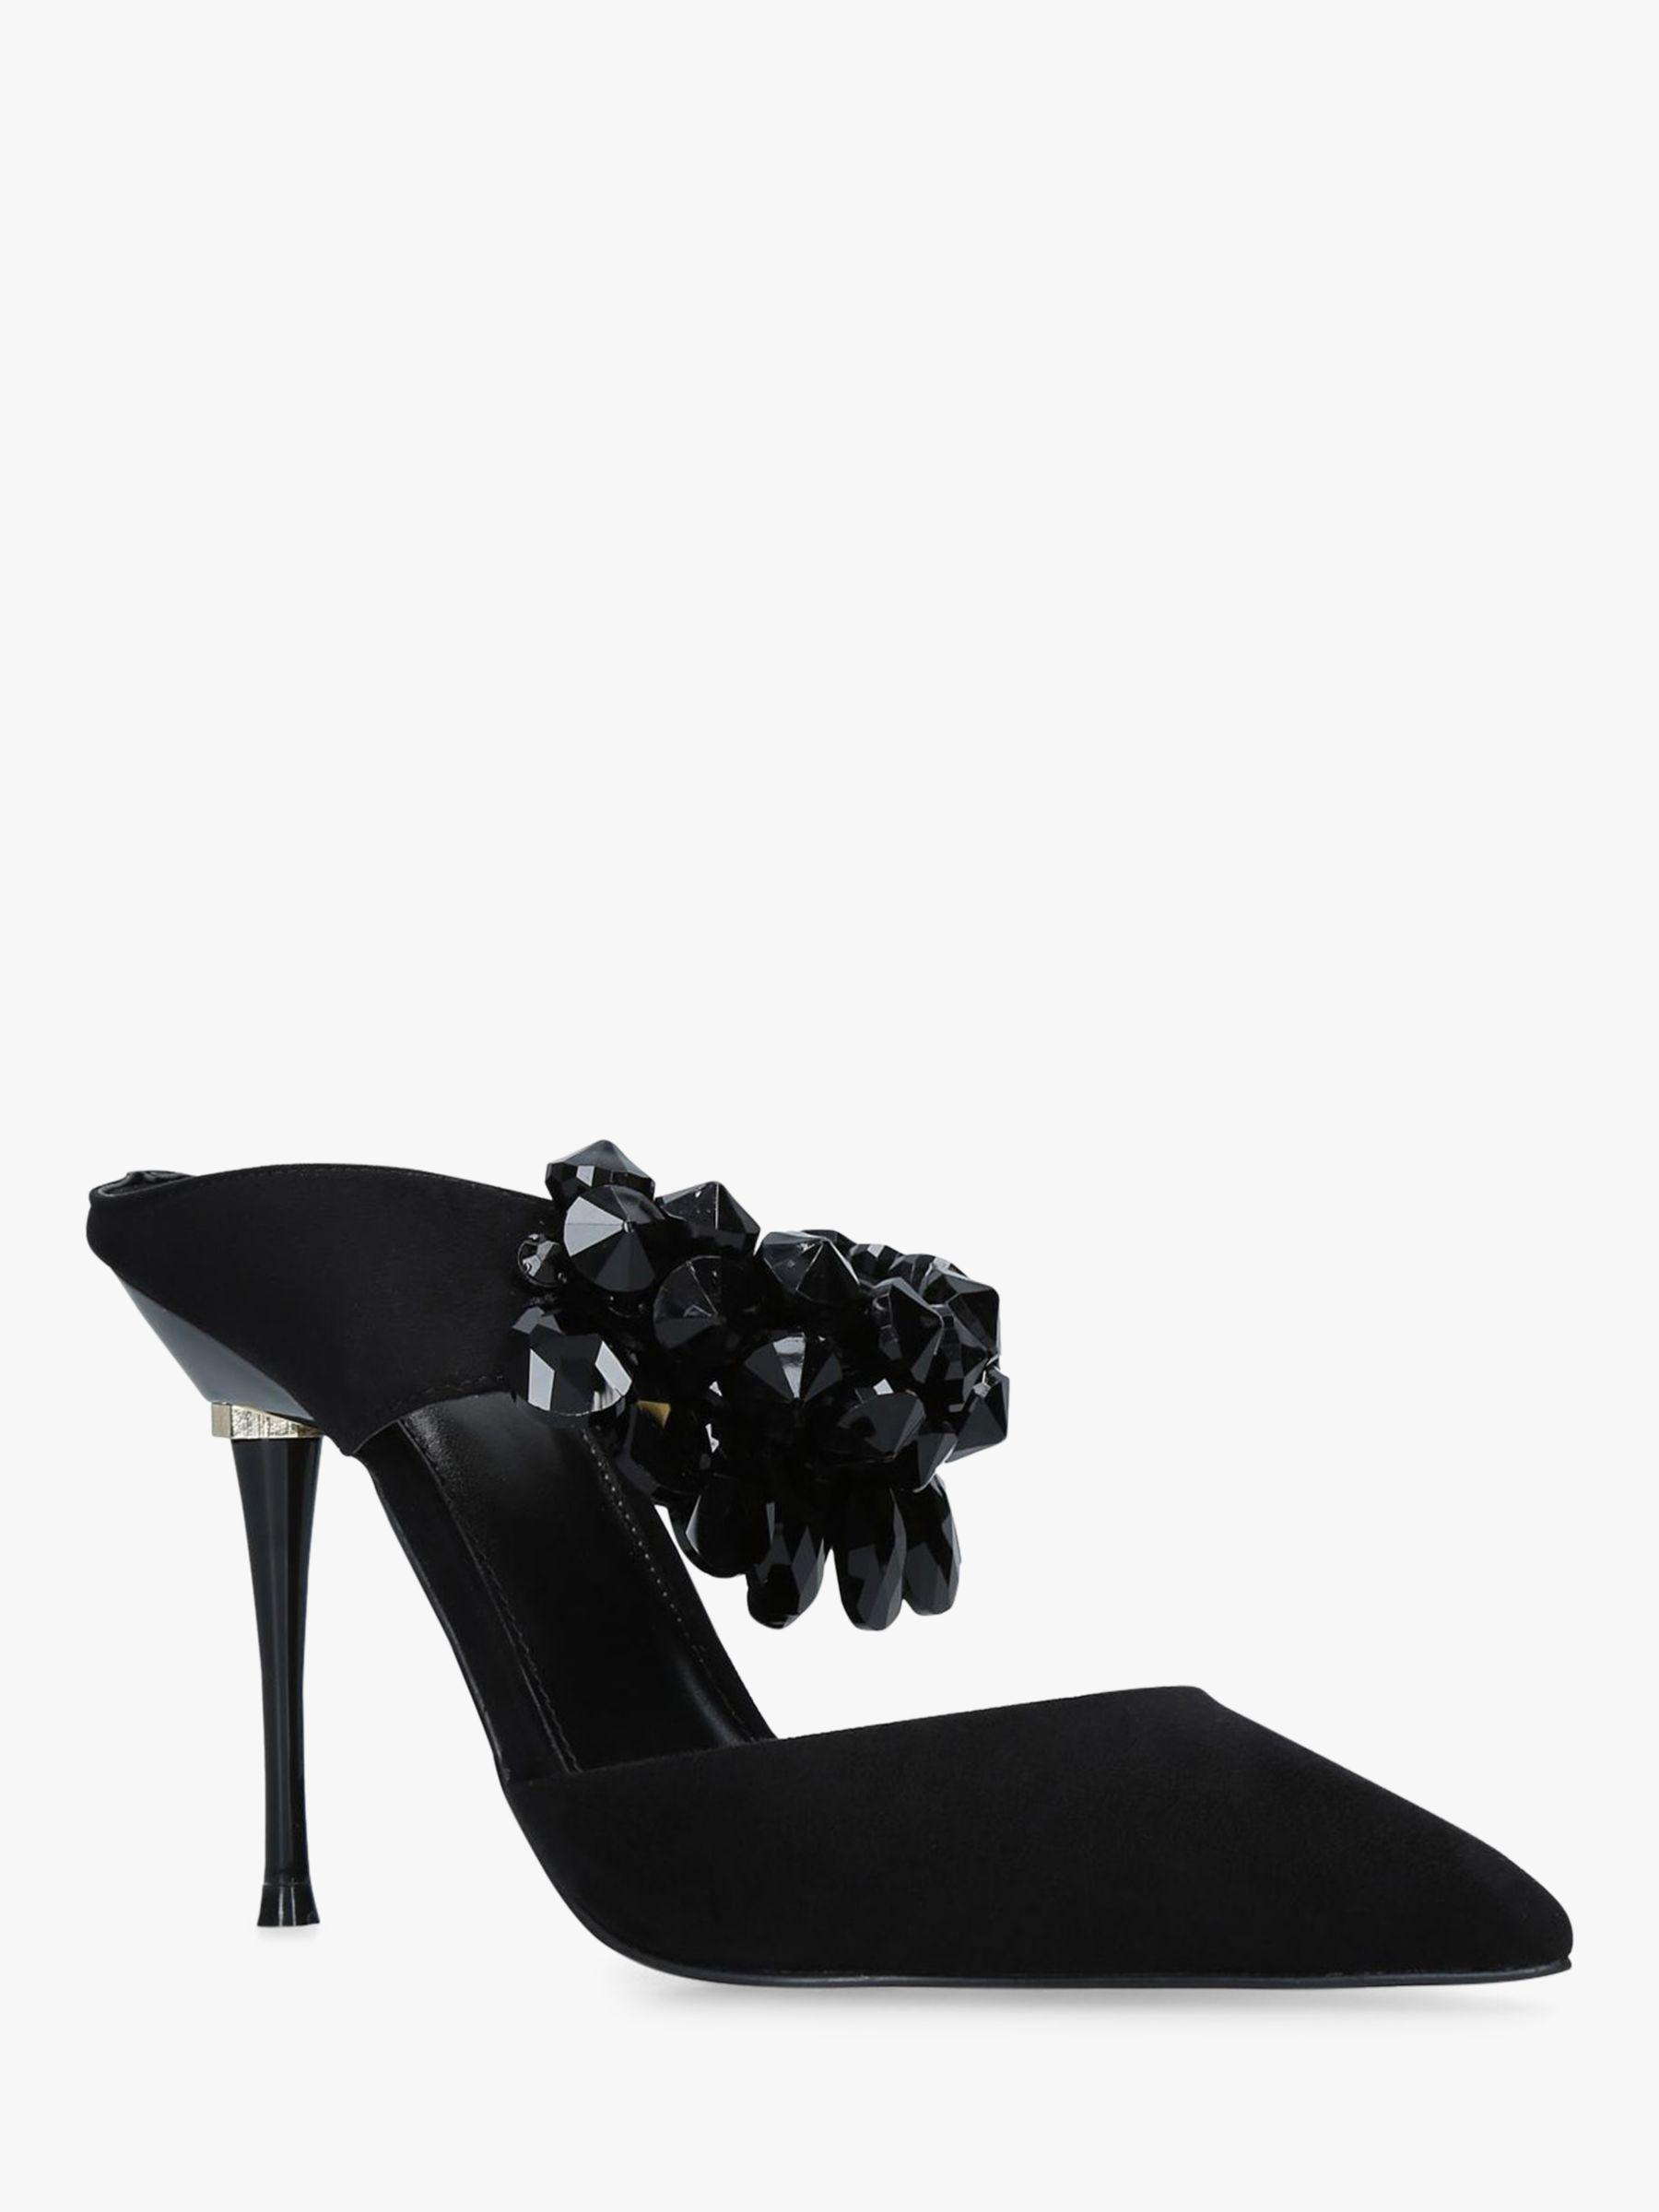 8eb685e3008e Carvela Kurt Geiger Gallileo Stiletto Heel Mule Court Shoes in Black ...